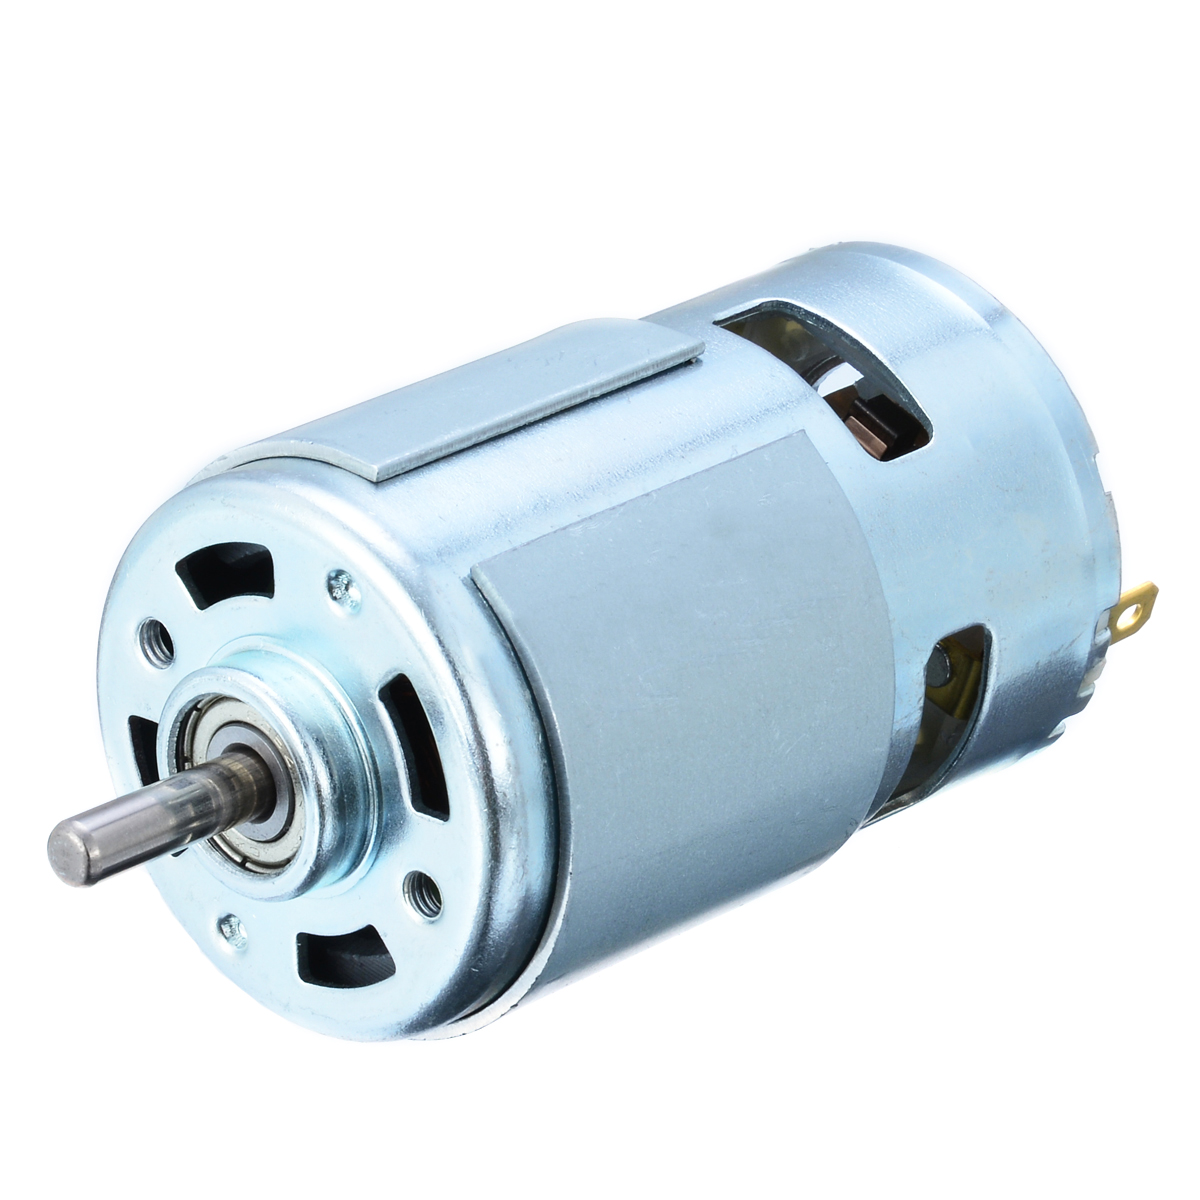 24 volt 250 280 watt MY1025 Electric Motor Includes 11 Tooth #25 Chain Sprocket